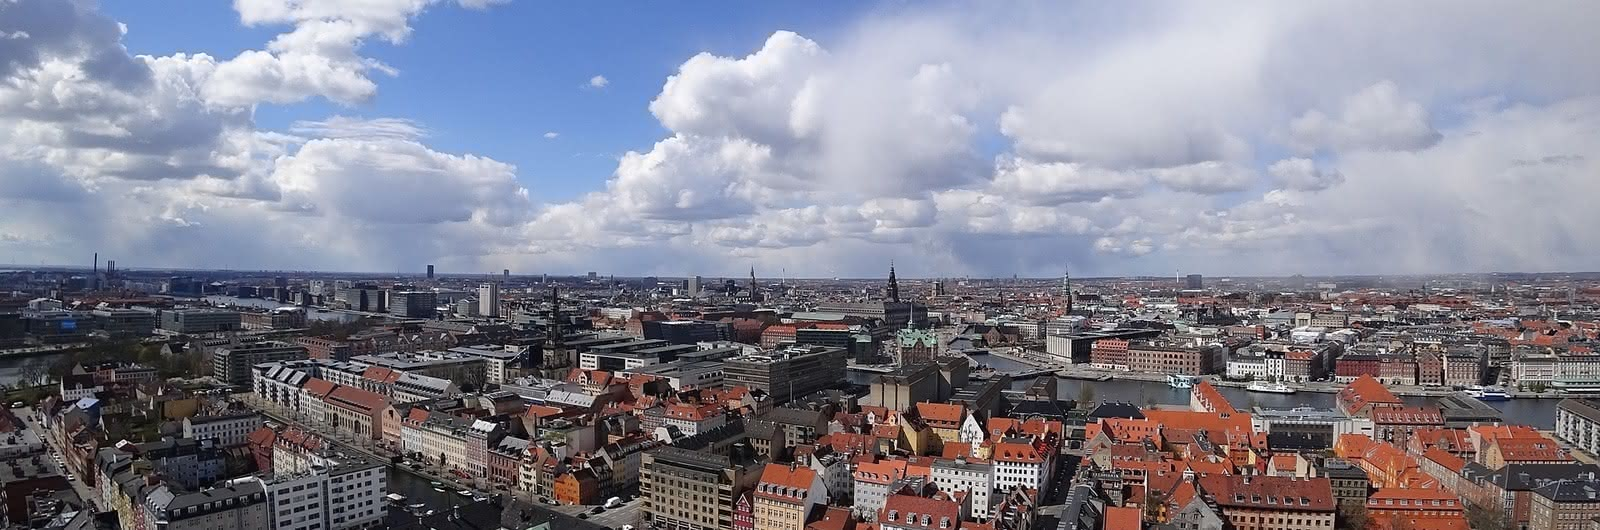 copenhagen city header